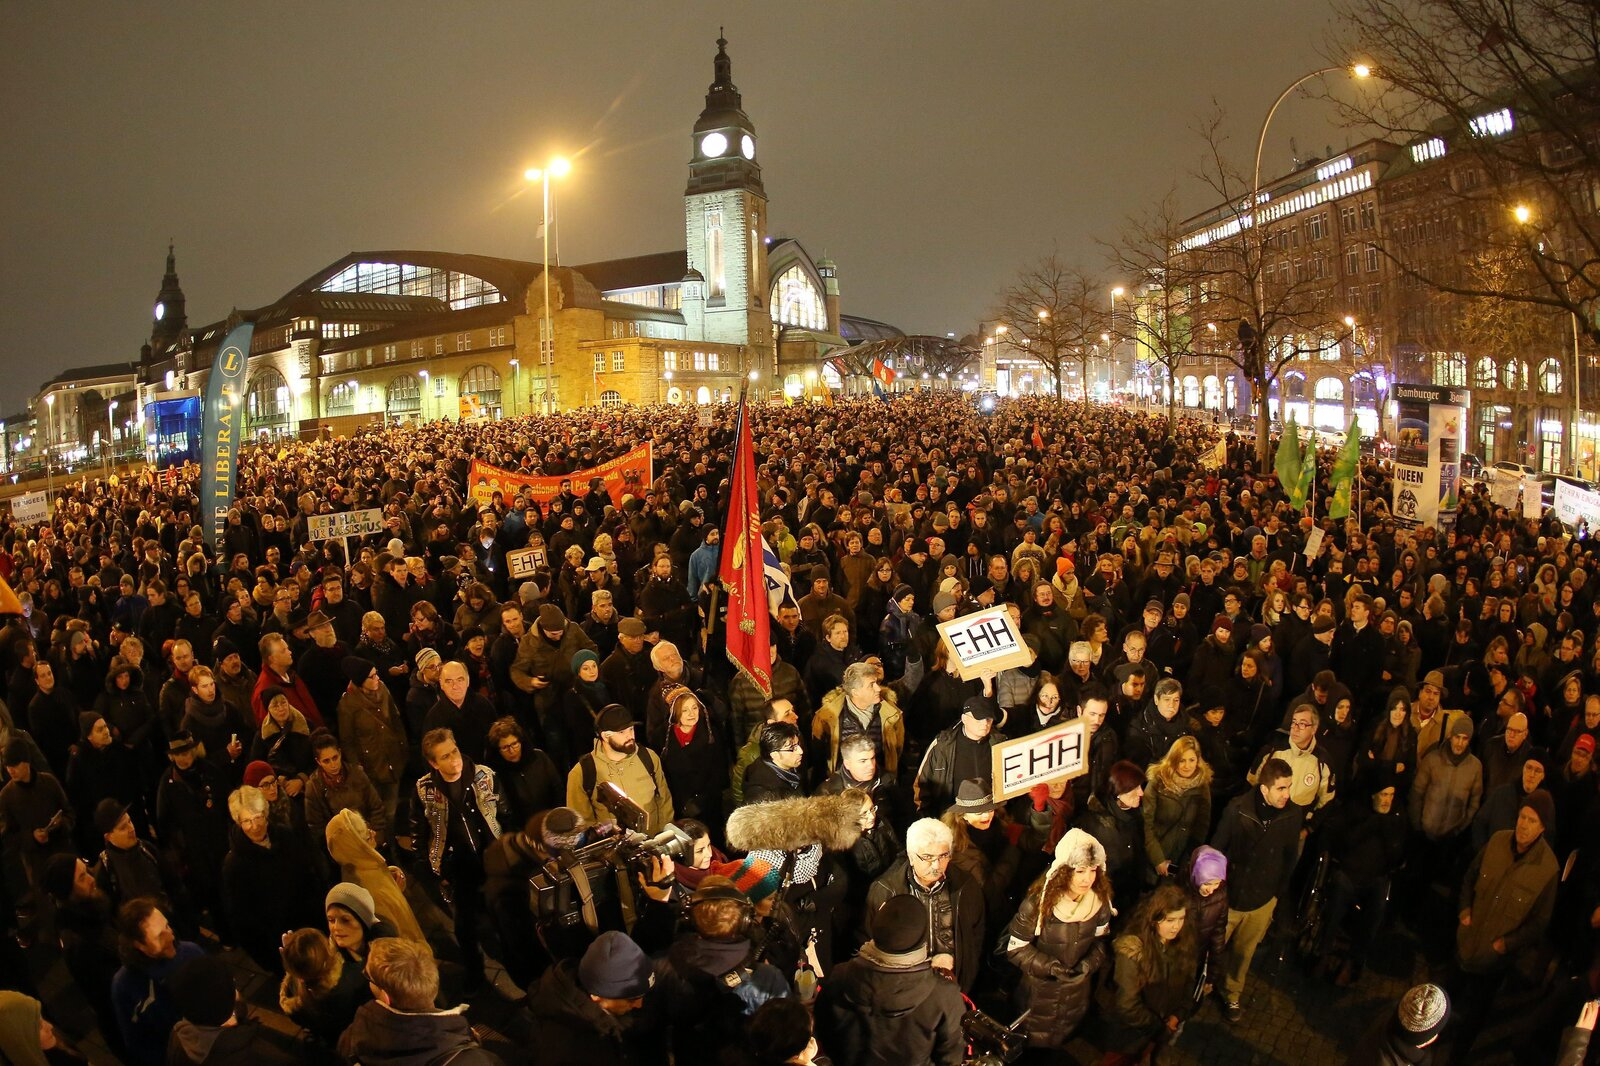 People protest against PEGIDA in Hamburg, Germany, on Monday.